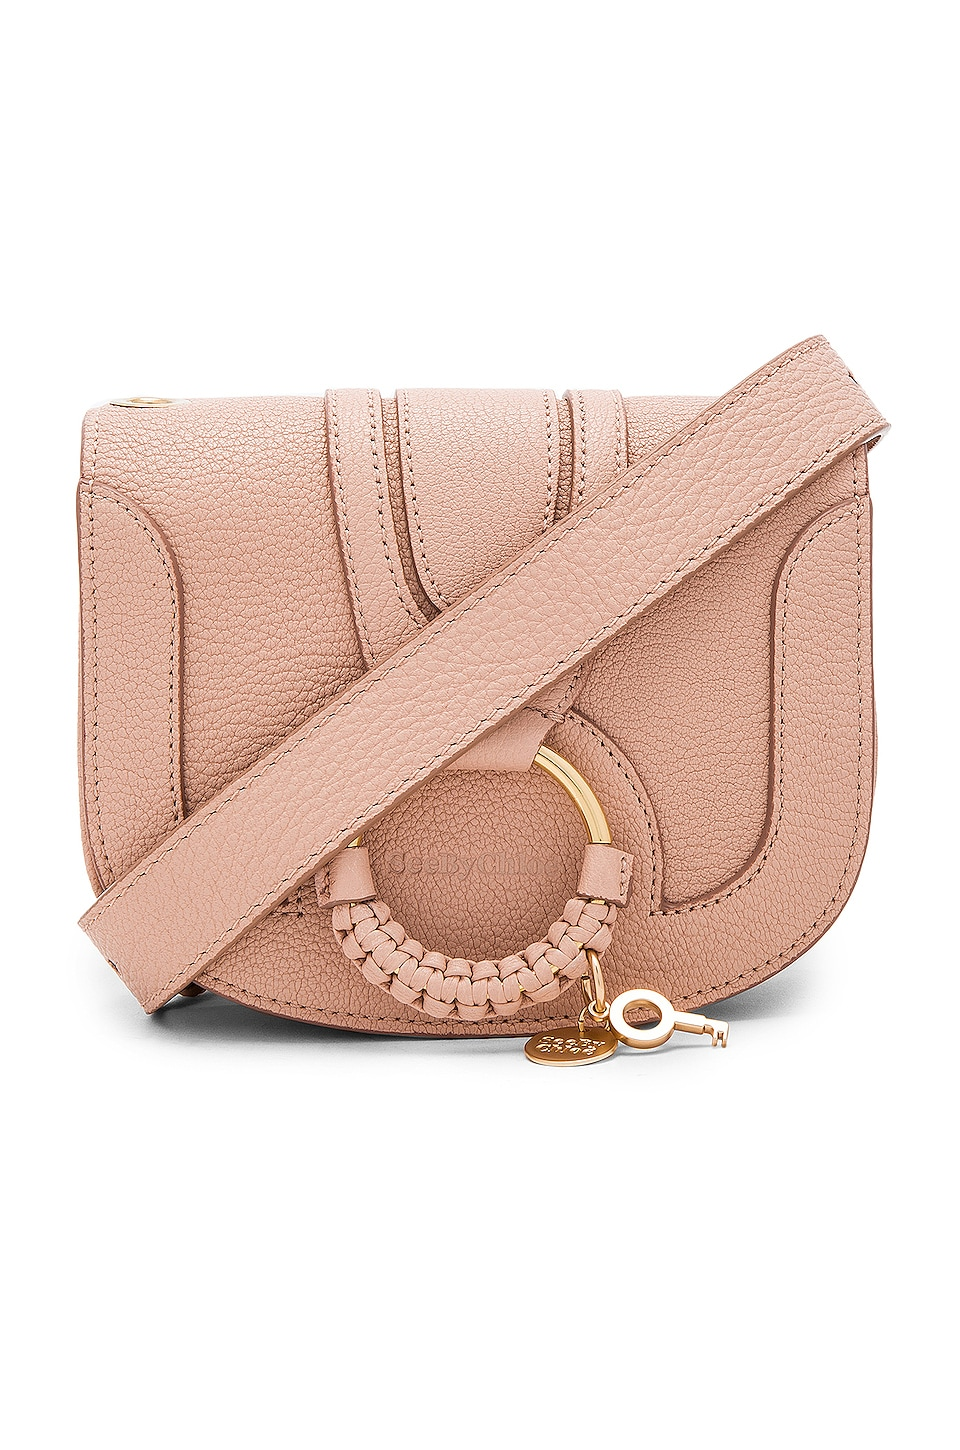 See By Chloe Hana Small Crossbody Bag in Powder